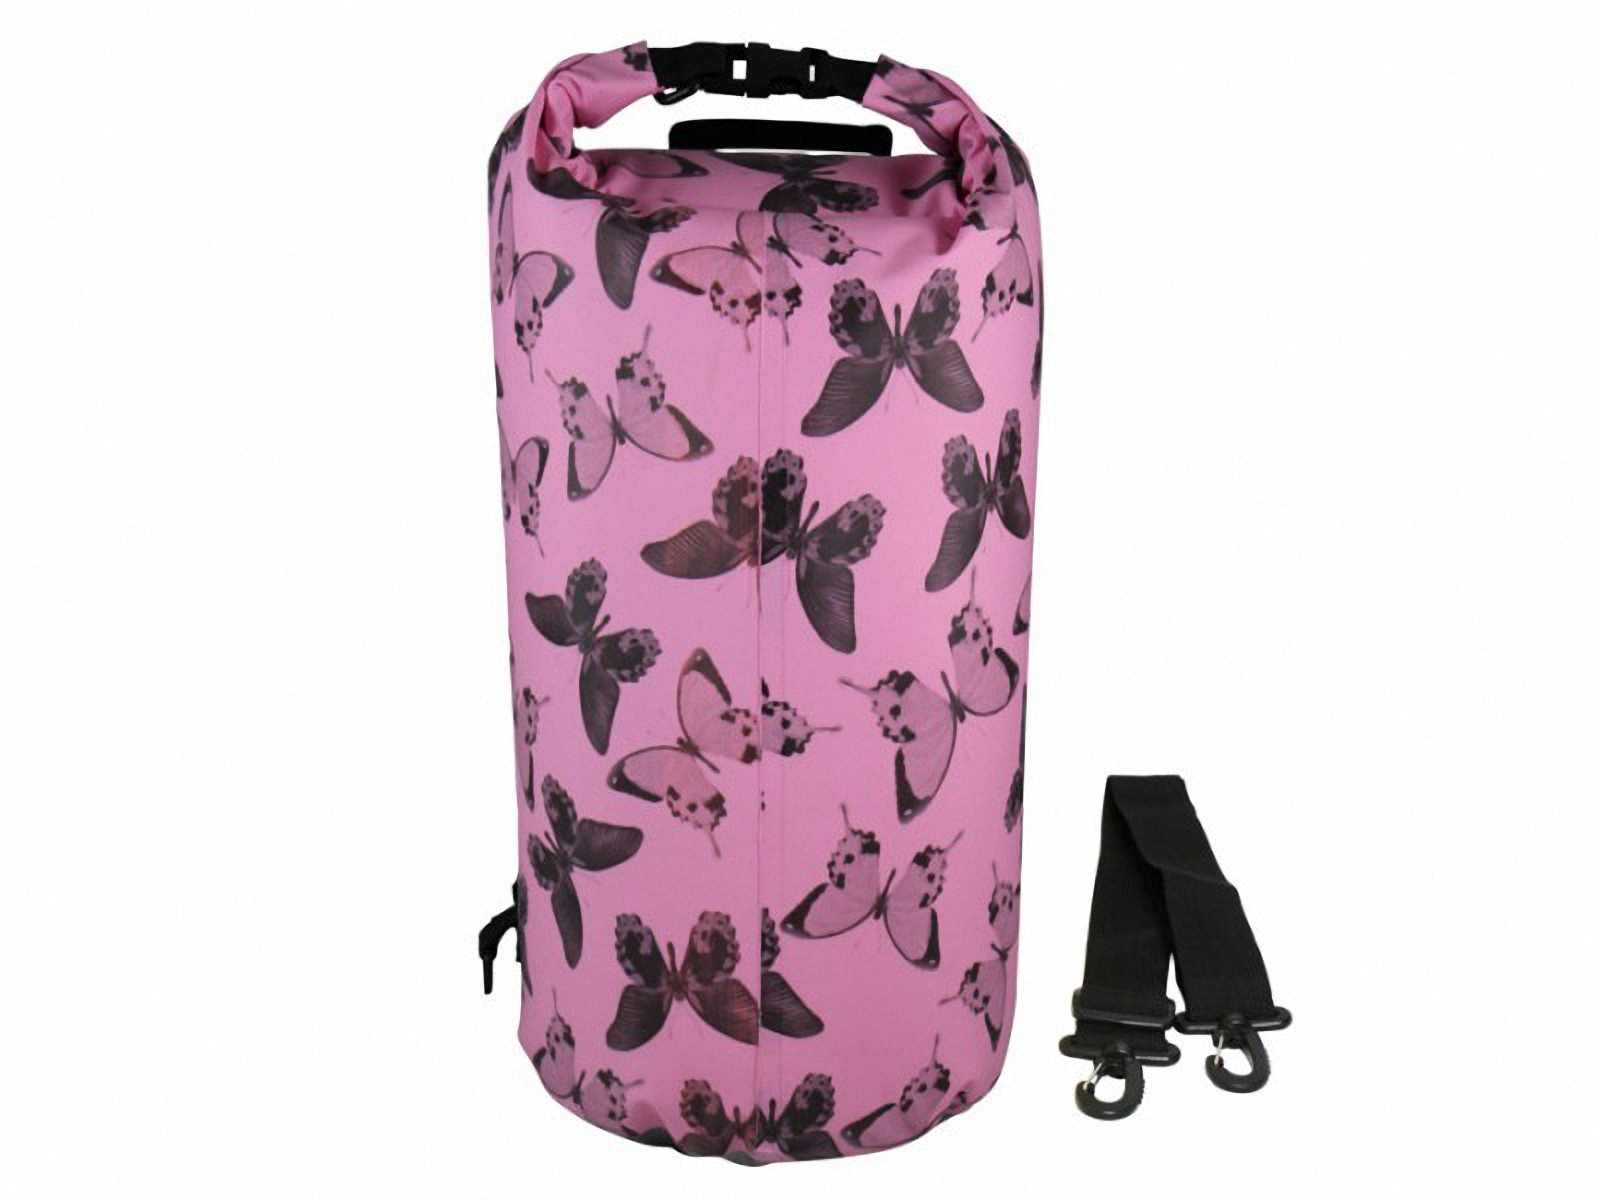 Водонепроницаемая сумка OverBoard US1005P-Butterfly - Waterproof Dry Tube Bag - 20L. Фото 2